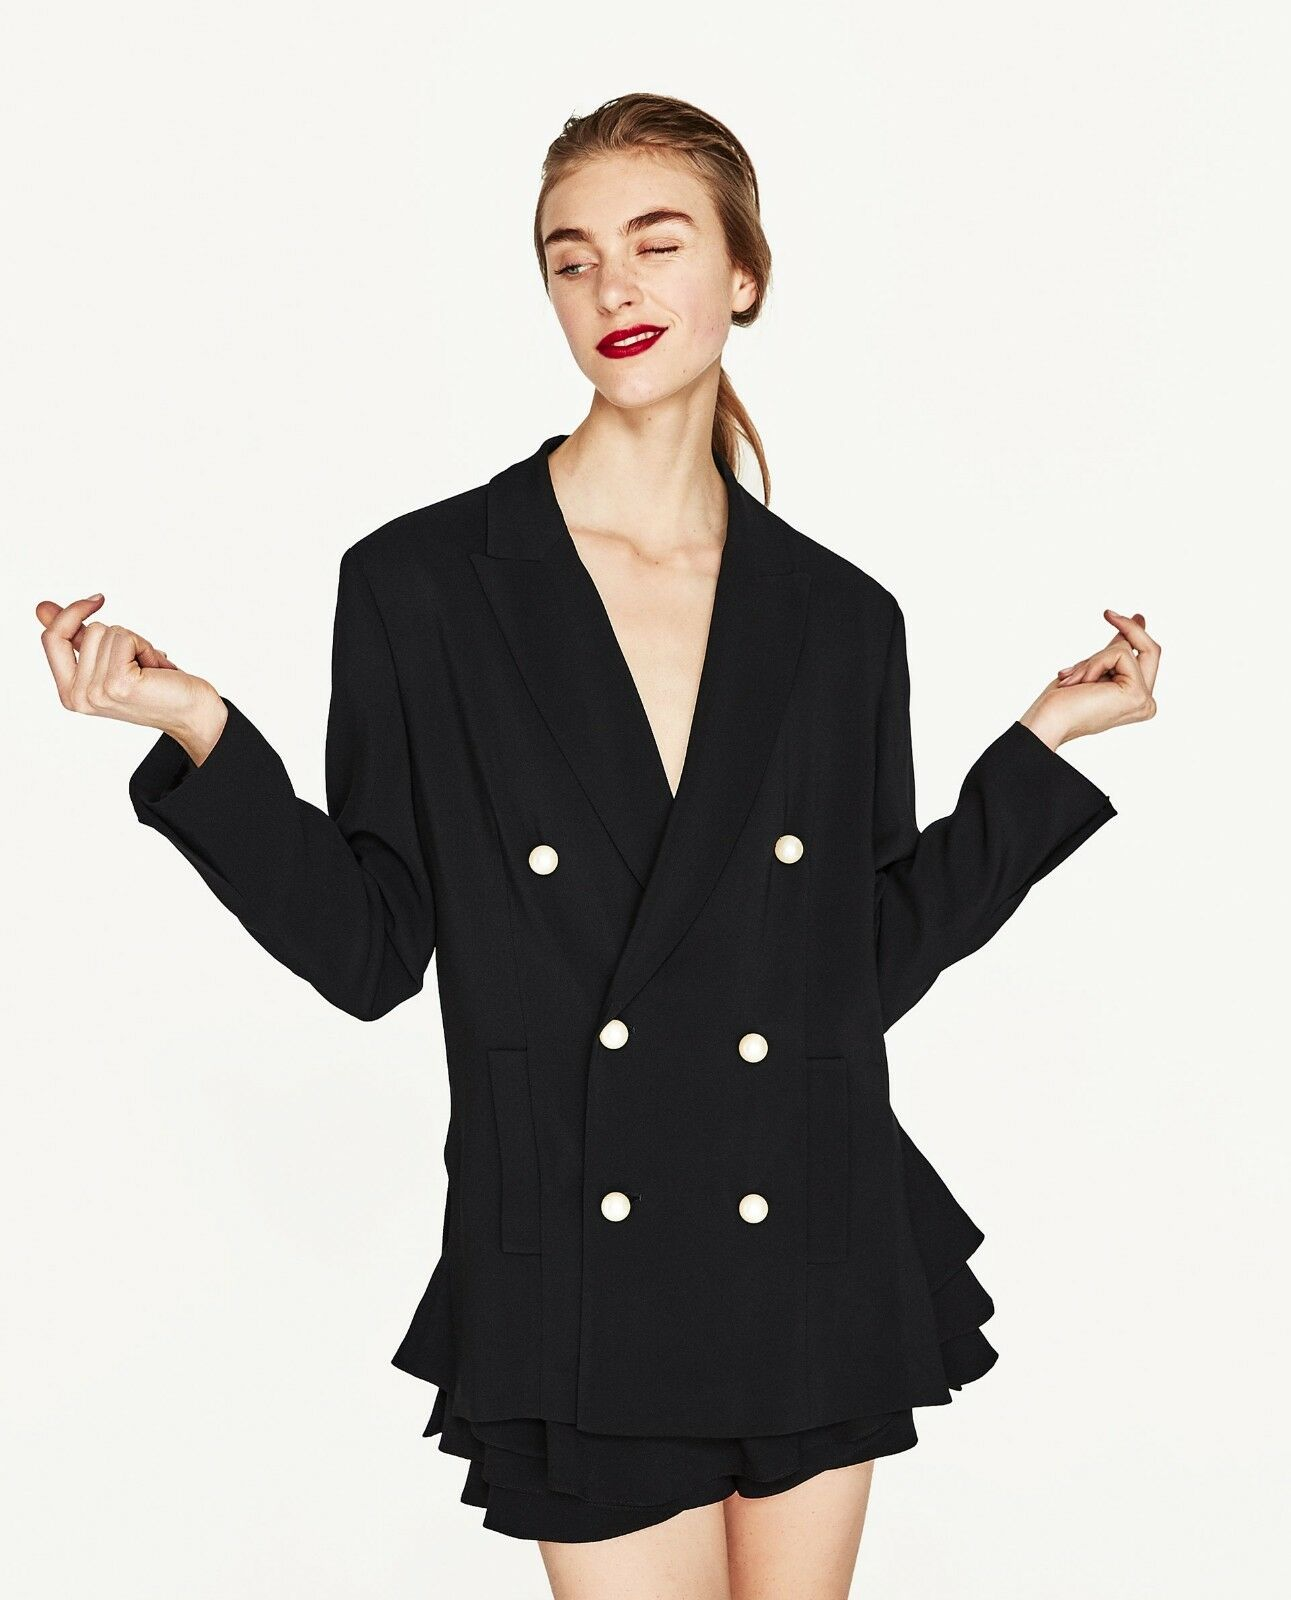 d78b1cab Details about Rare!!! Size XS - NWT ZARA DOUBLE BREASTED JACKET WITH PEARL  BUTTONS COAT BLAZER